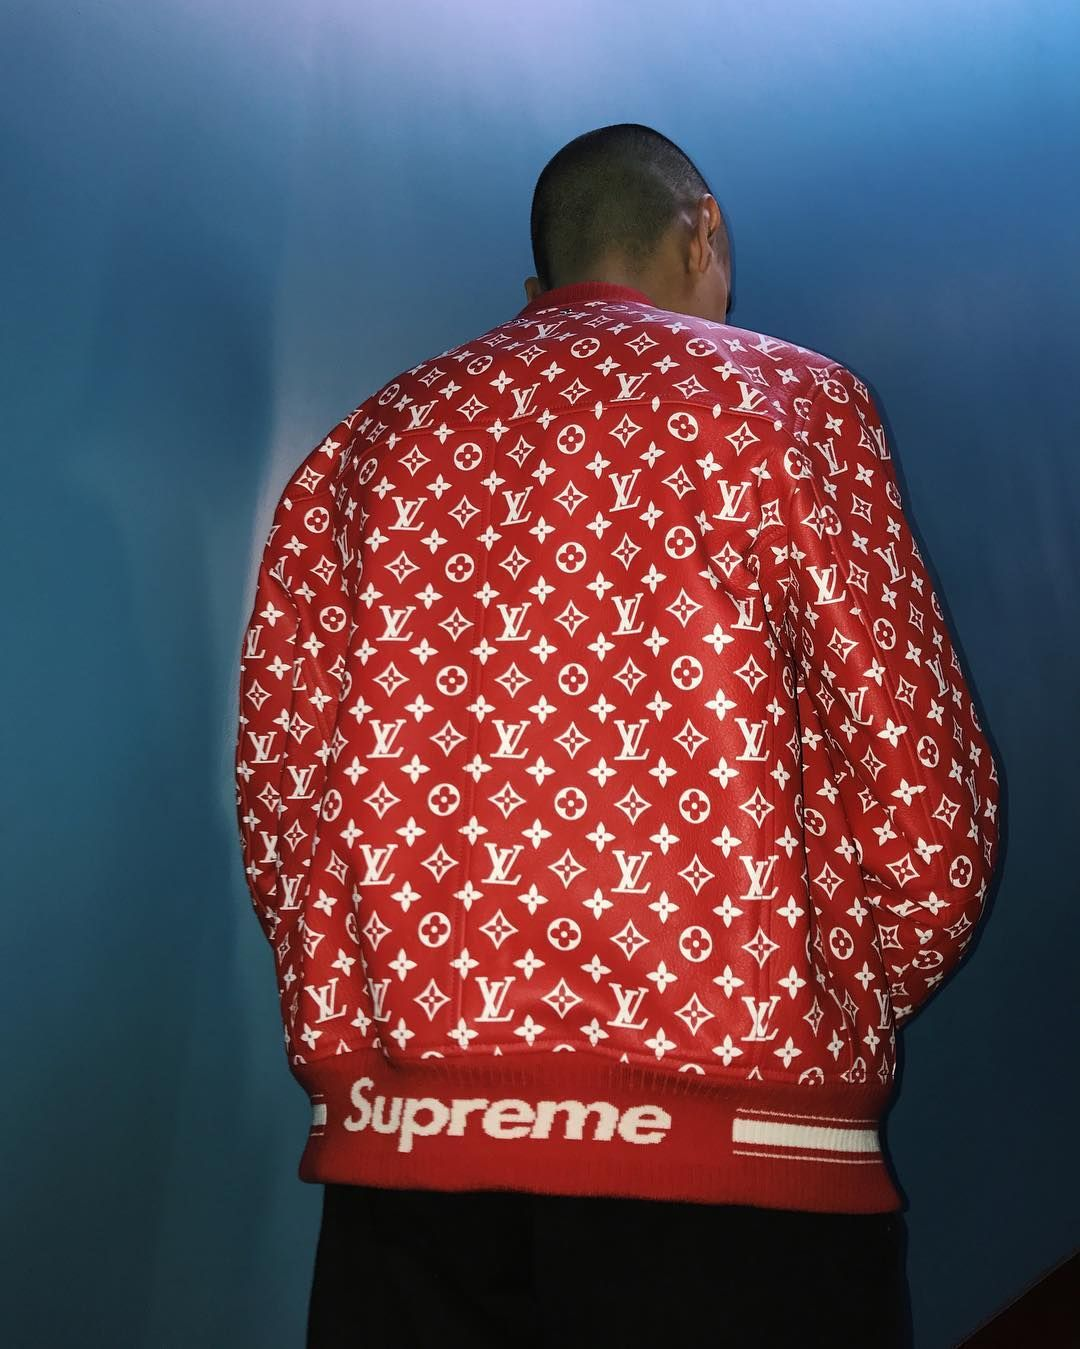 df4a63401205f Supreme x Louis Vuitton Is Real and Here s What You Need to Know (Update)